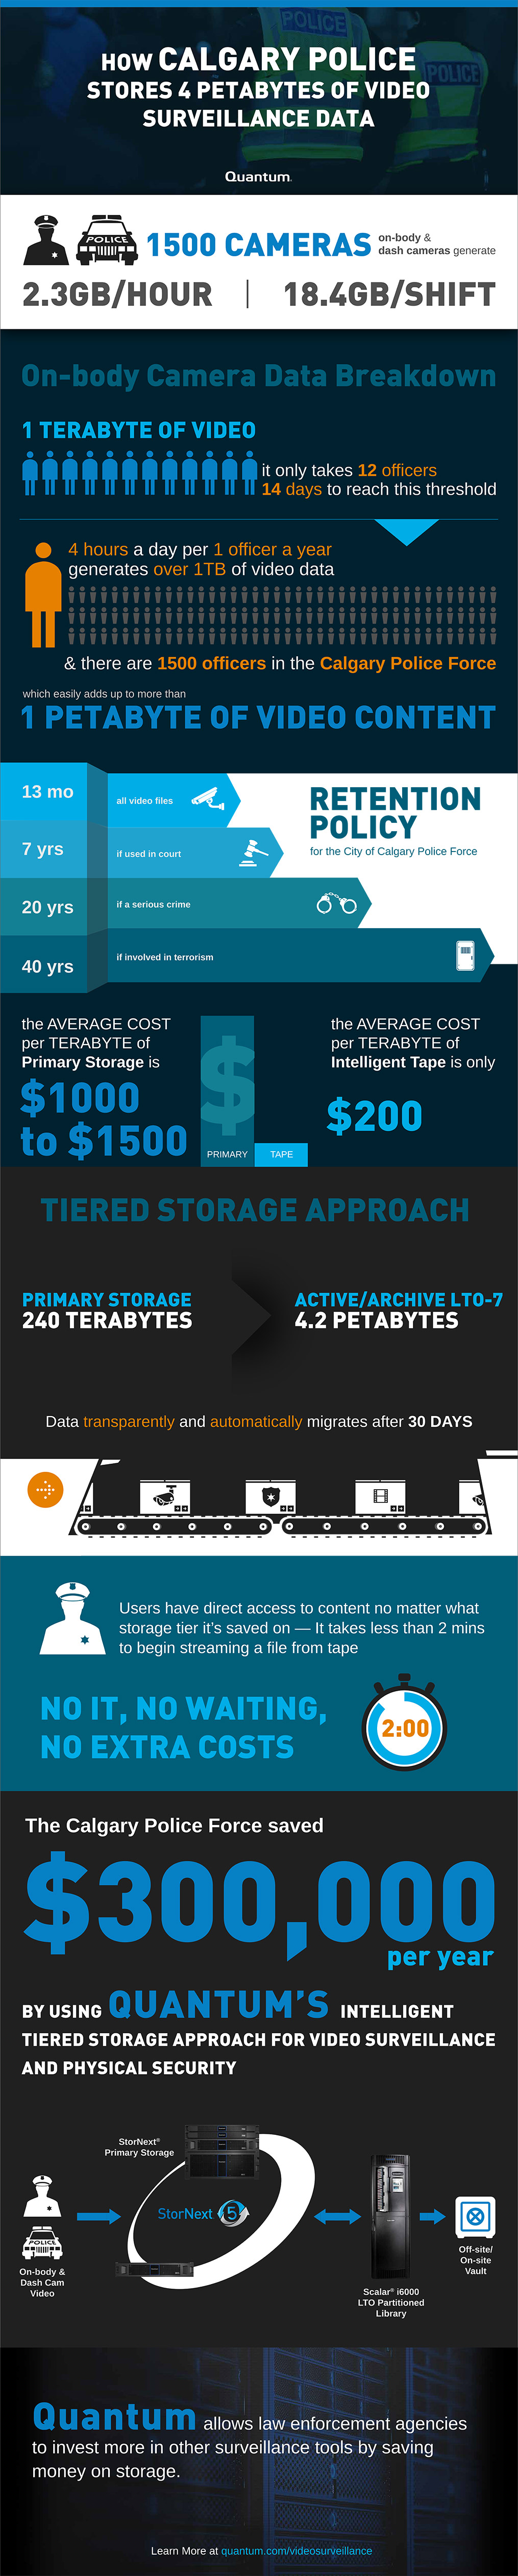 Calgary Police Video Surveillance Infographic